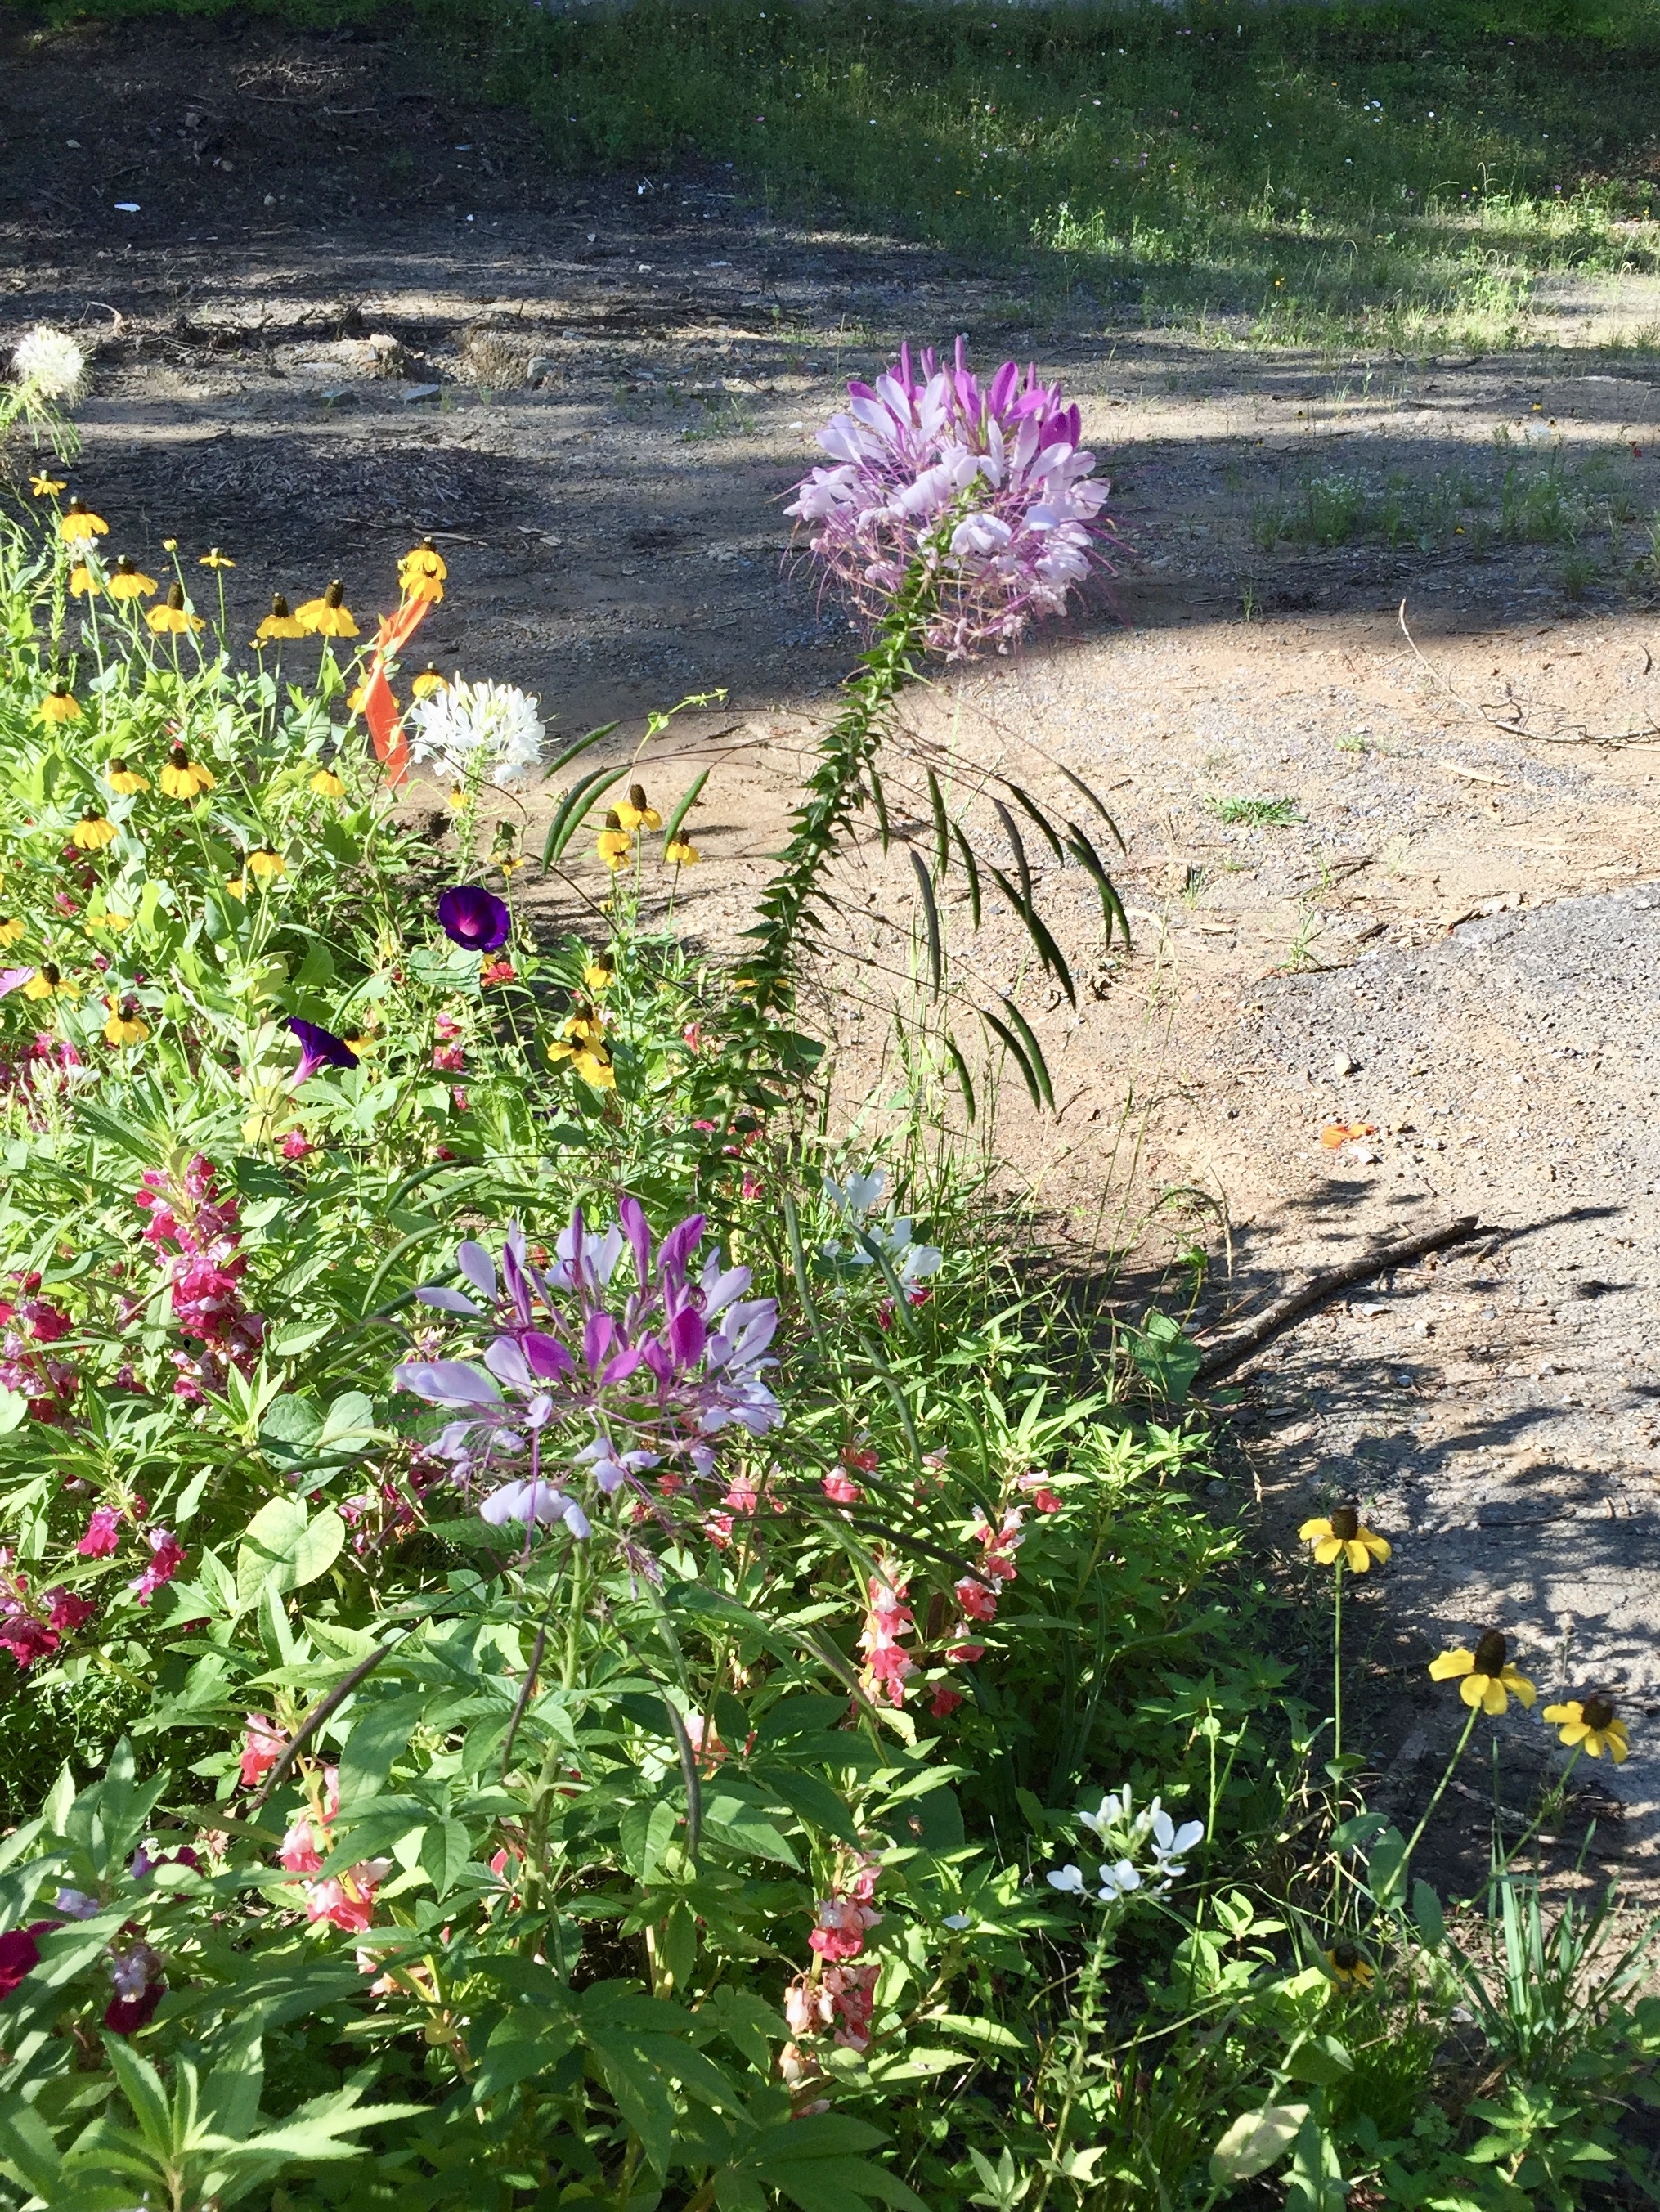 Wild flowers growing out of the ashes of where a building burned down at Arrowmont School of Arts.